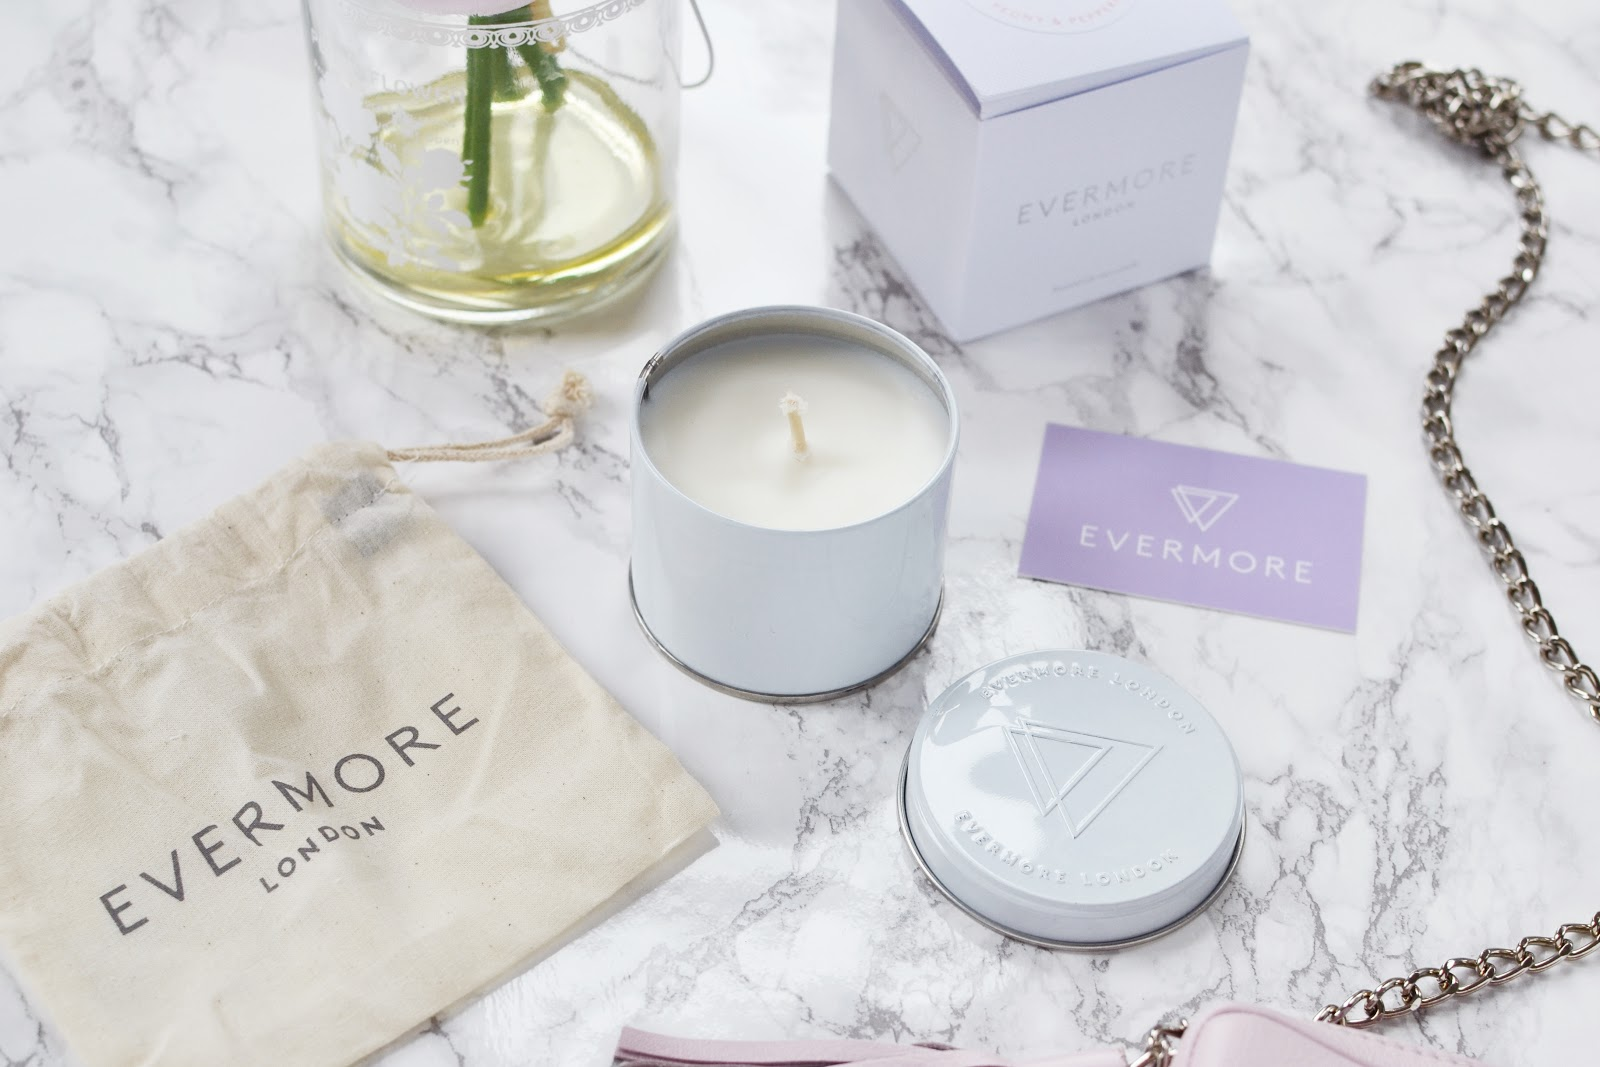 Evermore London Peony & Peppermint Soy Wax Candle